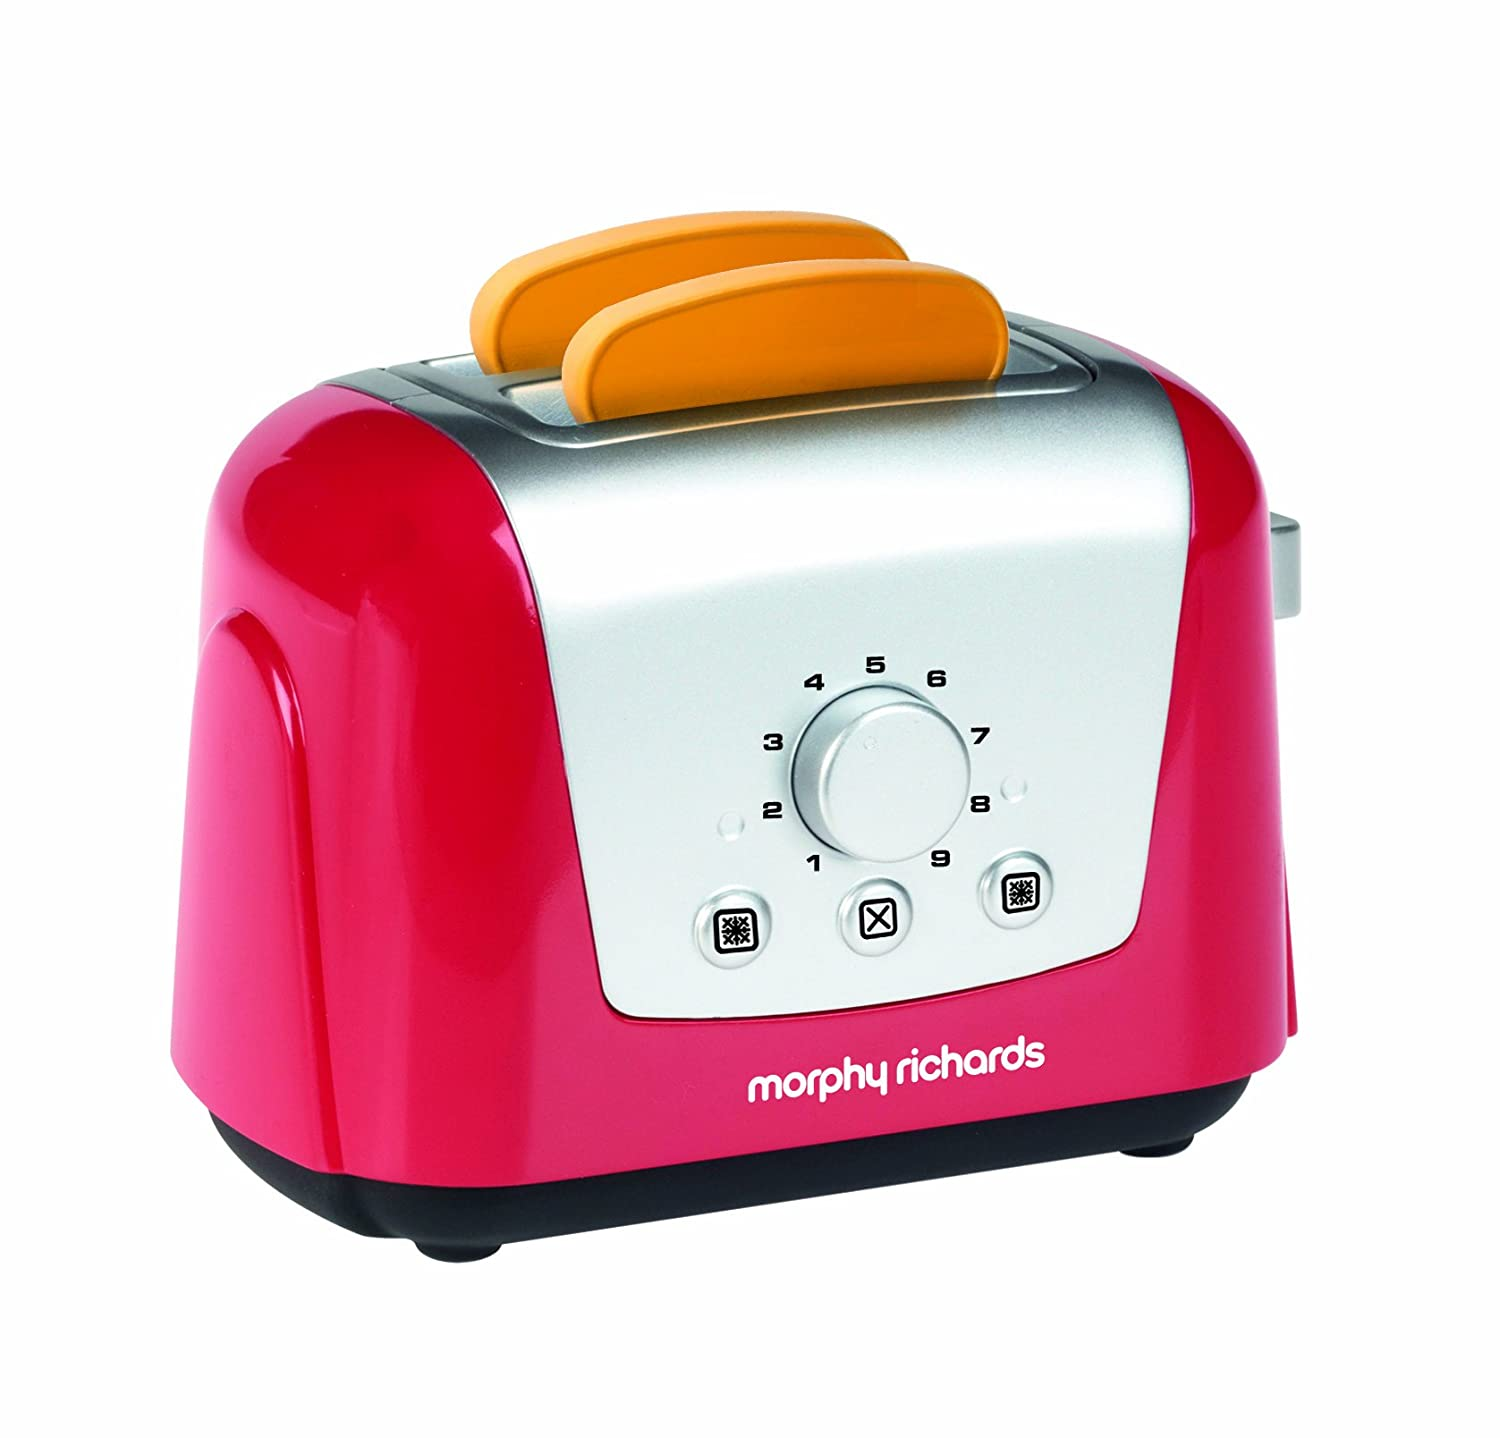 Kinder Toaster - Simba Hello Kitty Toaster